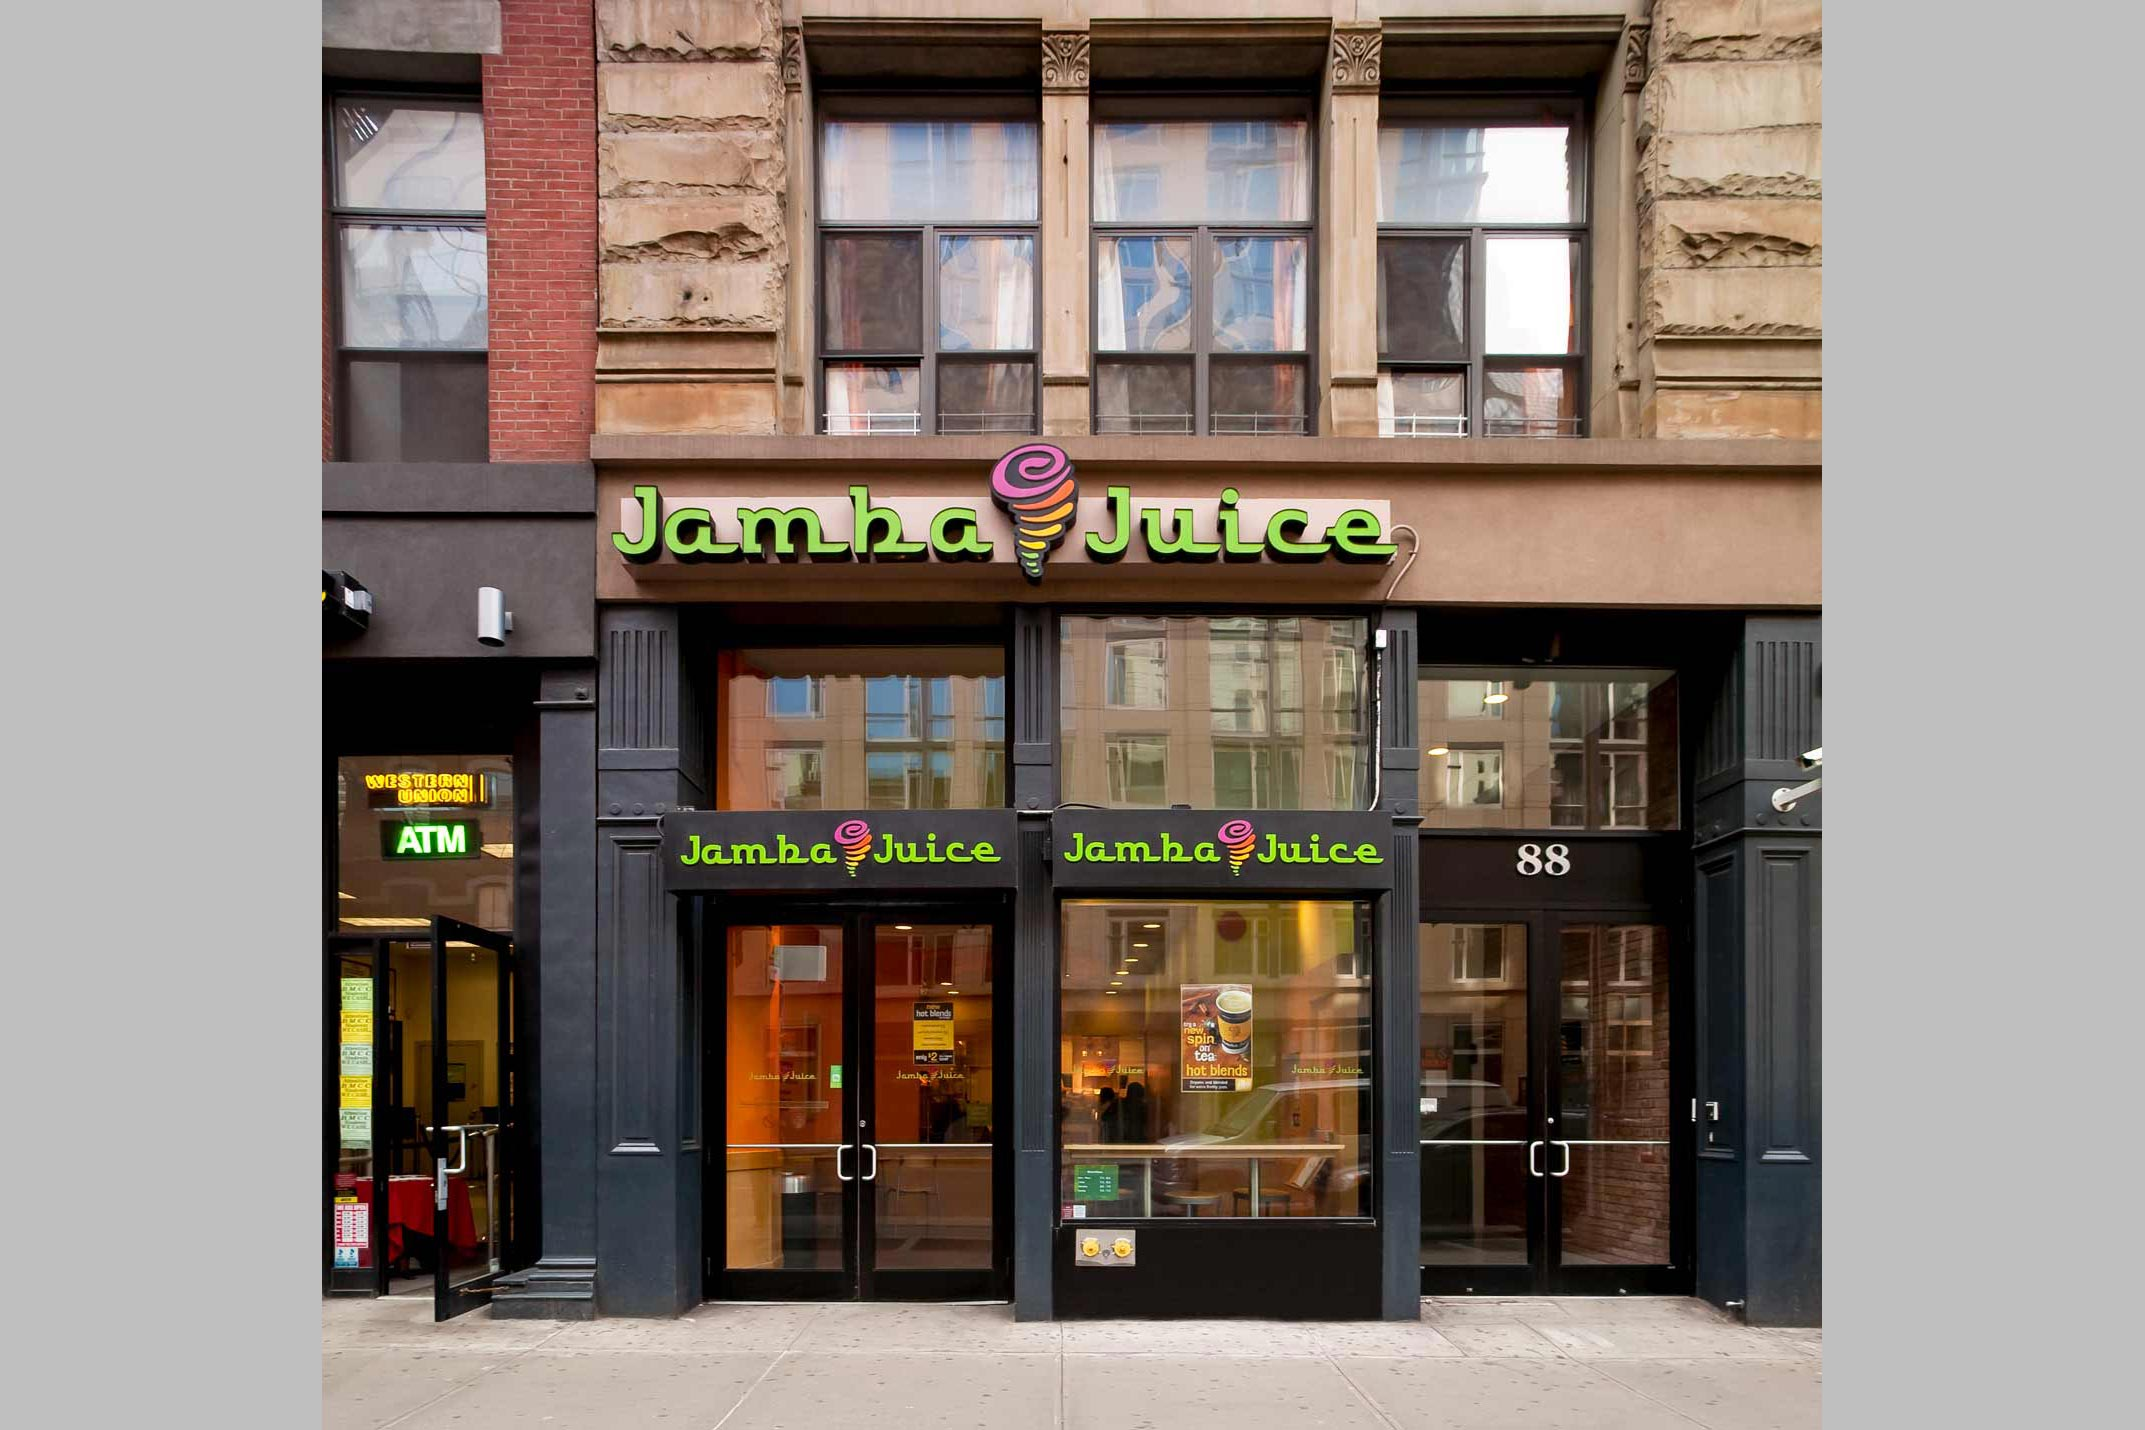 Commercial renovation of this Tribeca storefront and interior for Jamba Juice.